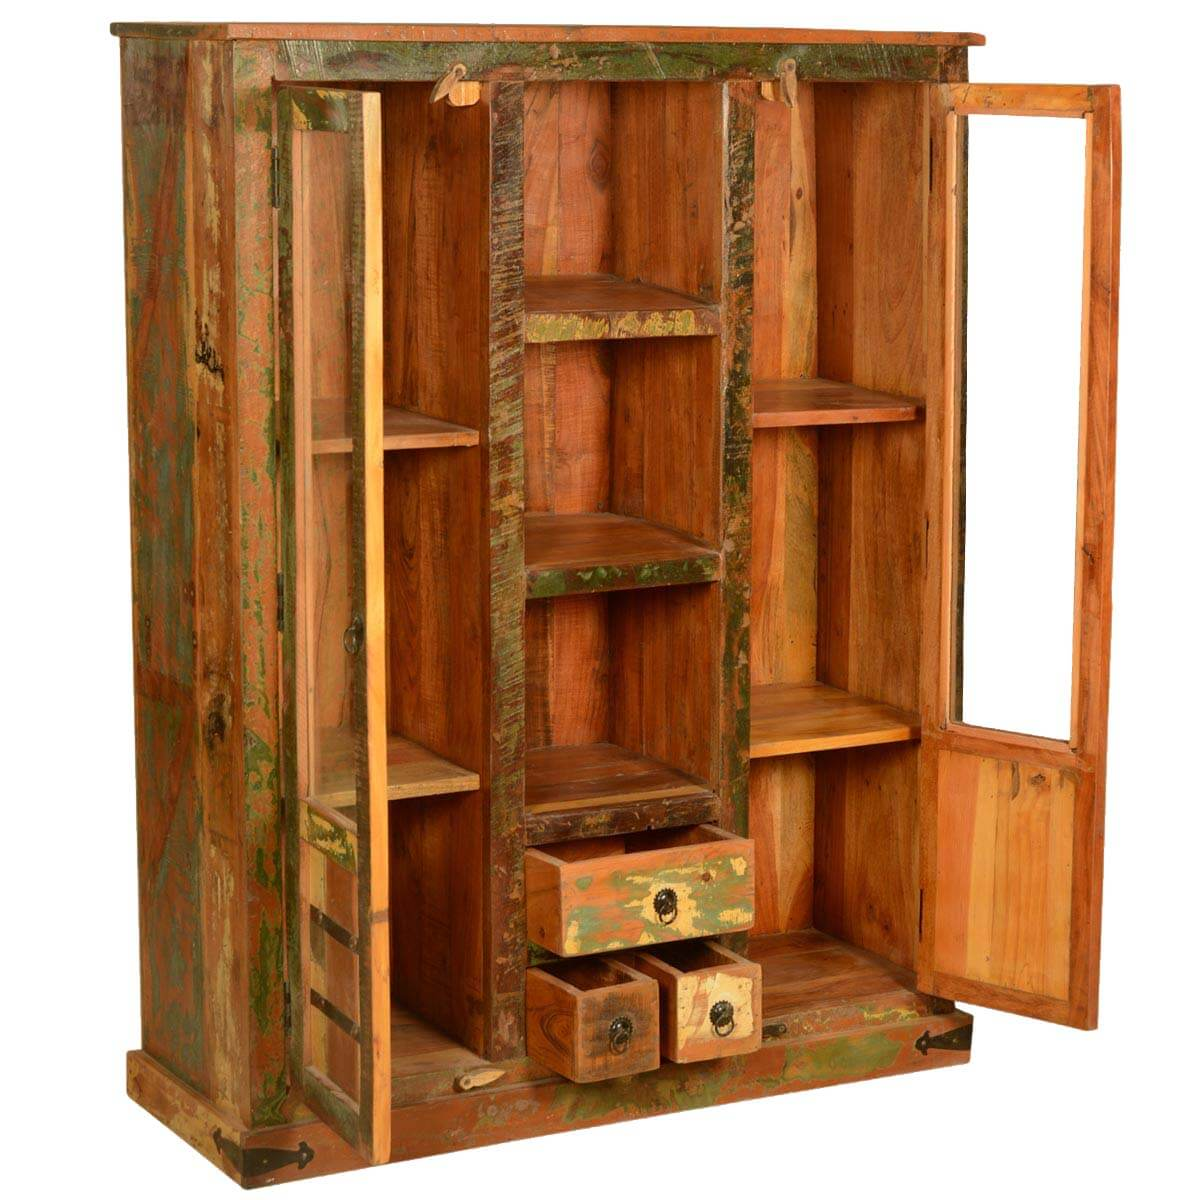 1200 #C77604  Speckled Rustic Reclaimed Wood Display Cabinet W Glass Doors picture/photo Wood Glass Doors 41591200